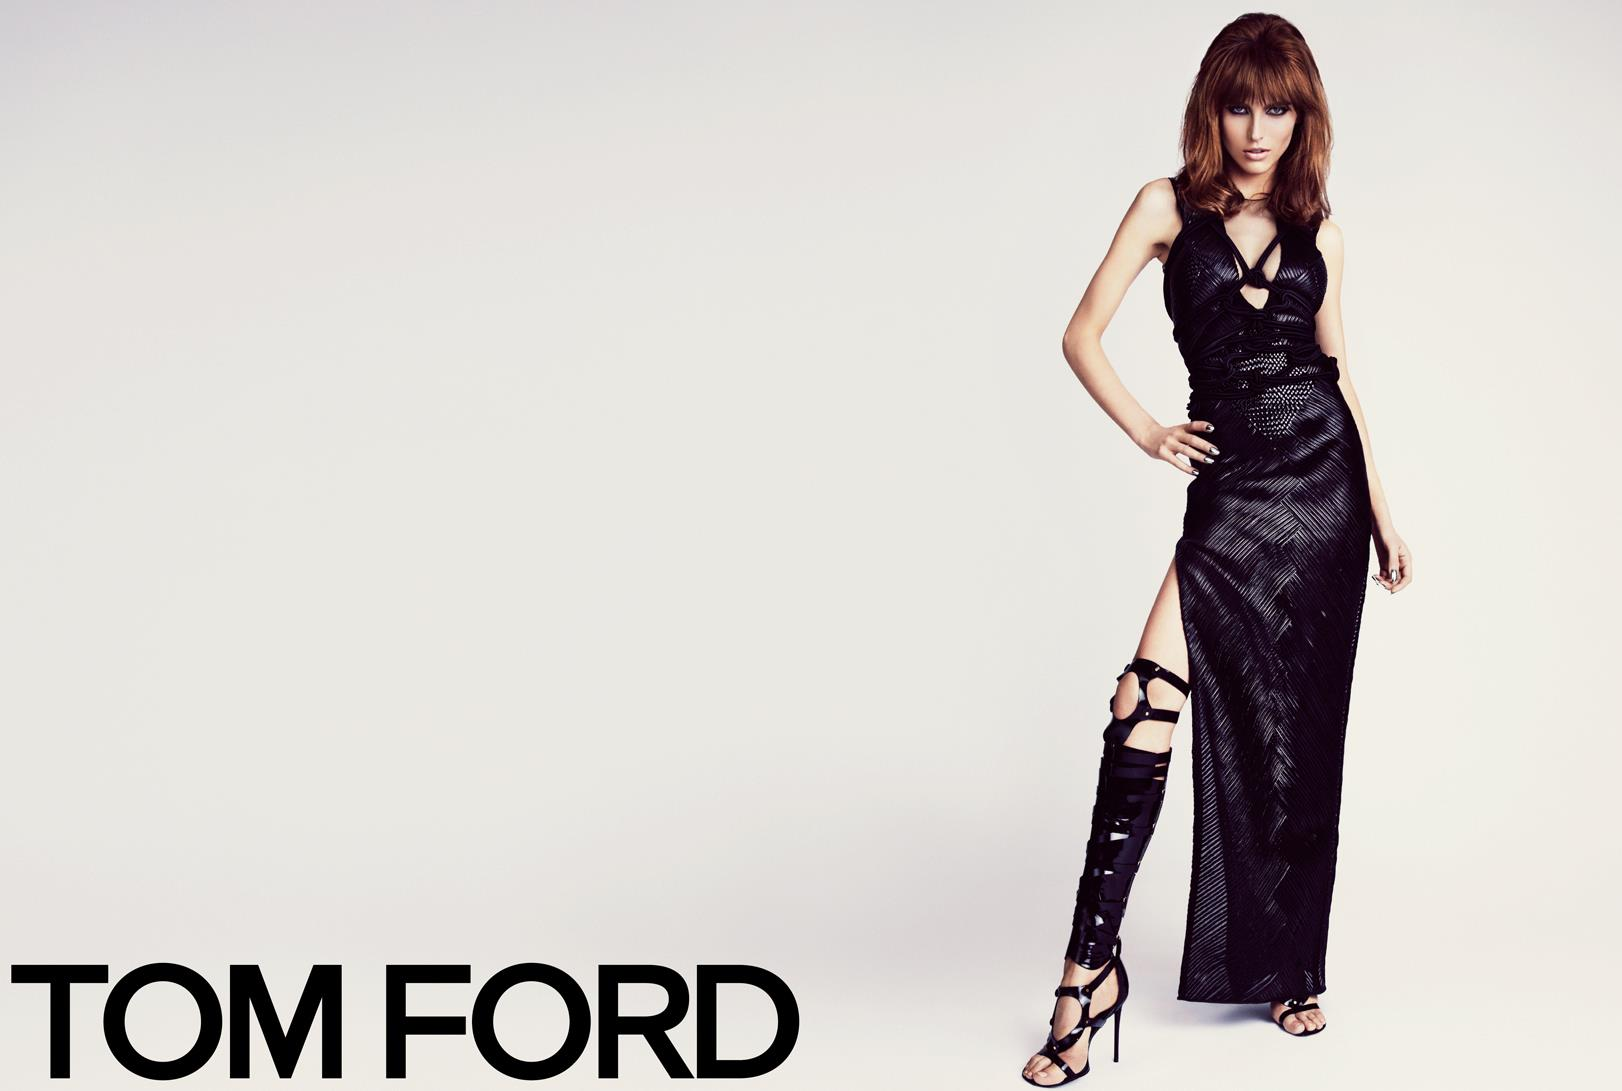 TOM FORD Spring/Summer 2013 Ad Campaign: Karlina Caune and Simon Van Meervenne (Hi Res) W SS13 CAMPAIGN 11